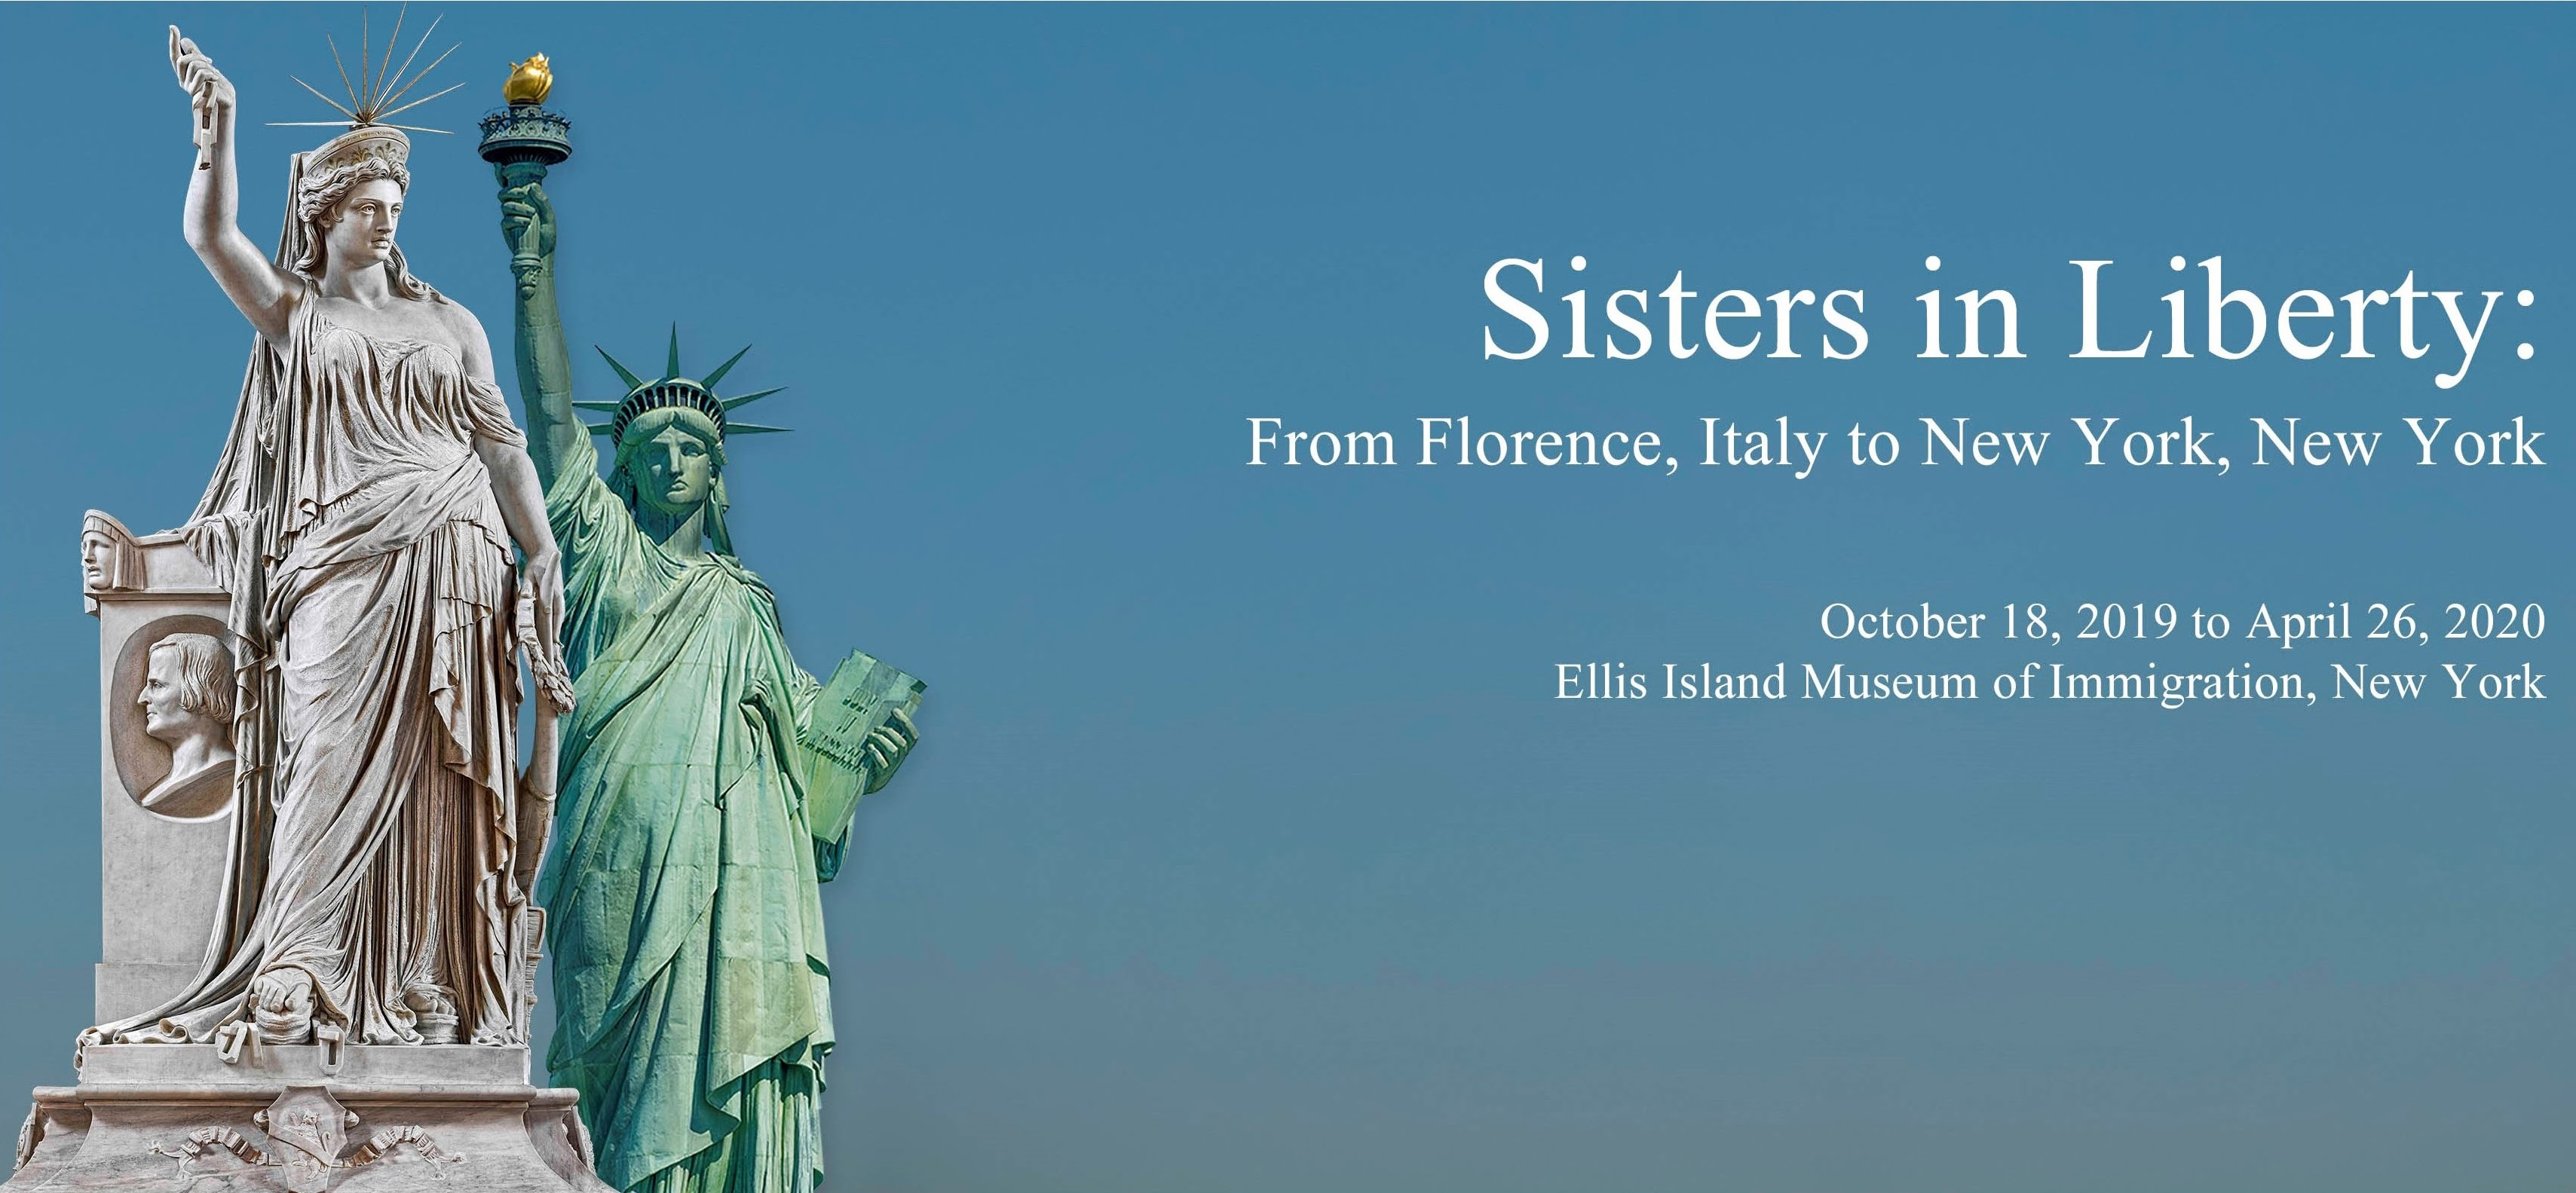 Sisters in Liberty: From Florence, Italy to New York, New York, Frédéric Bartholdi'sStatue of Liberty(1886) and her Italian twin, Pio Fedi'sLibertà della Poesia